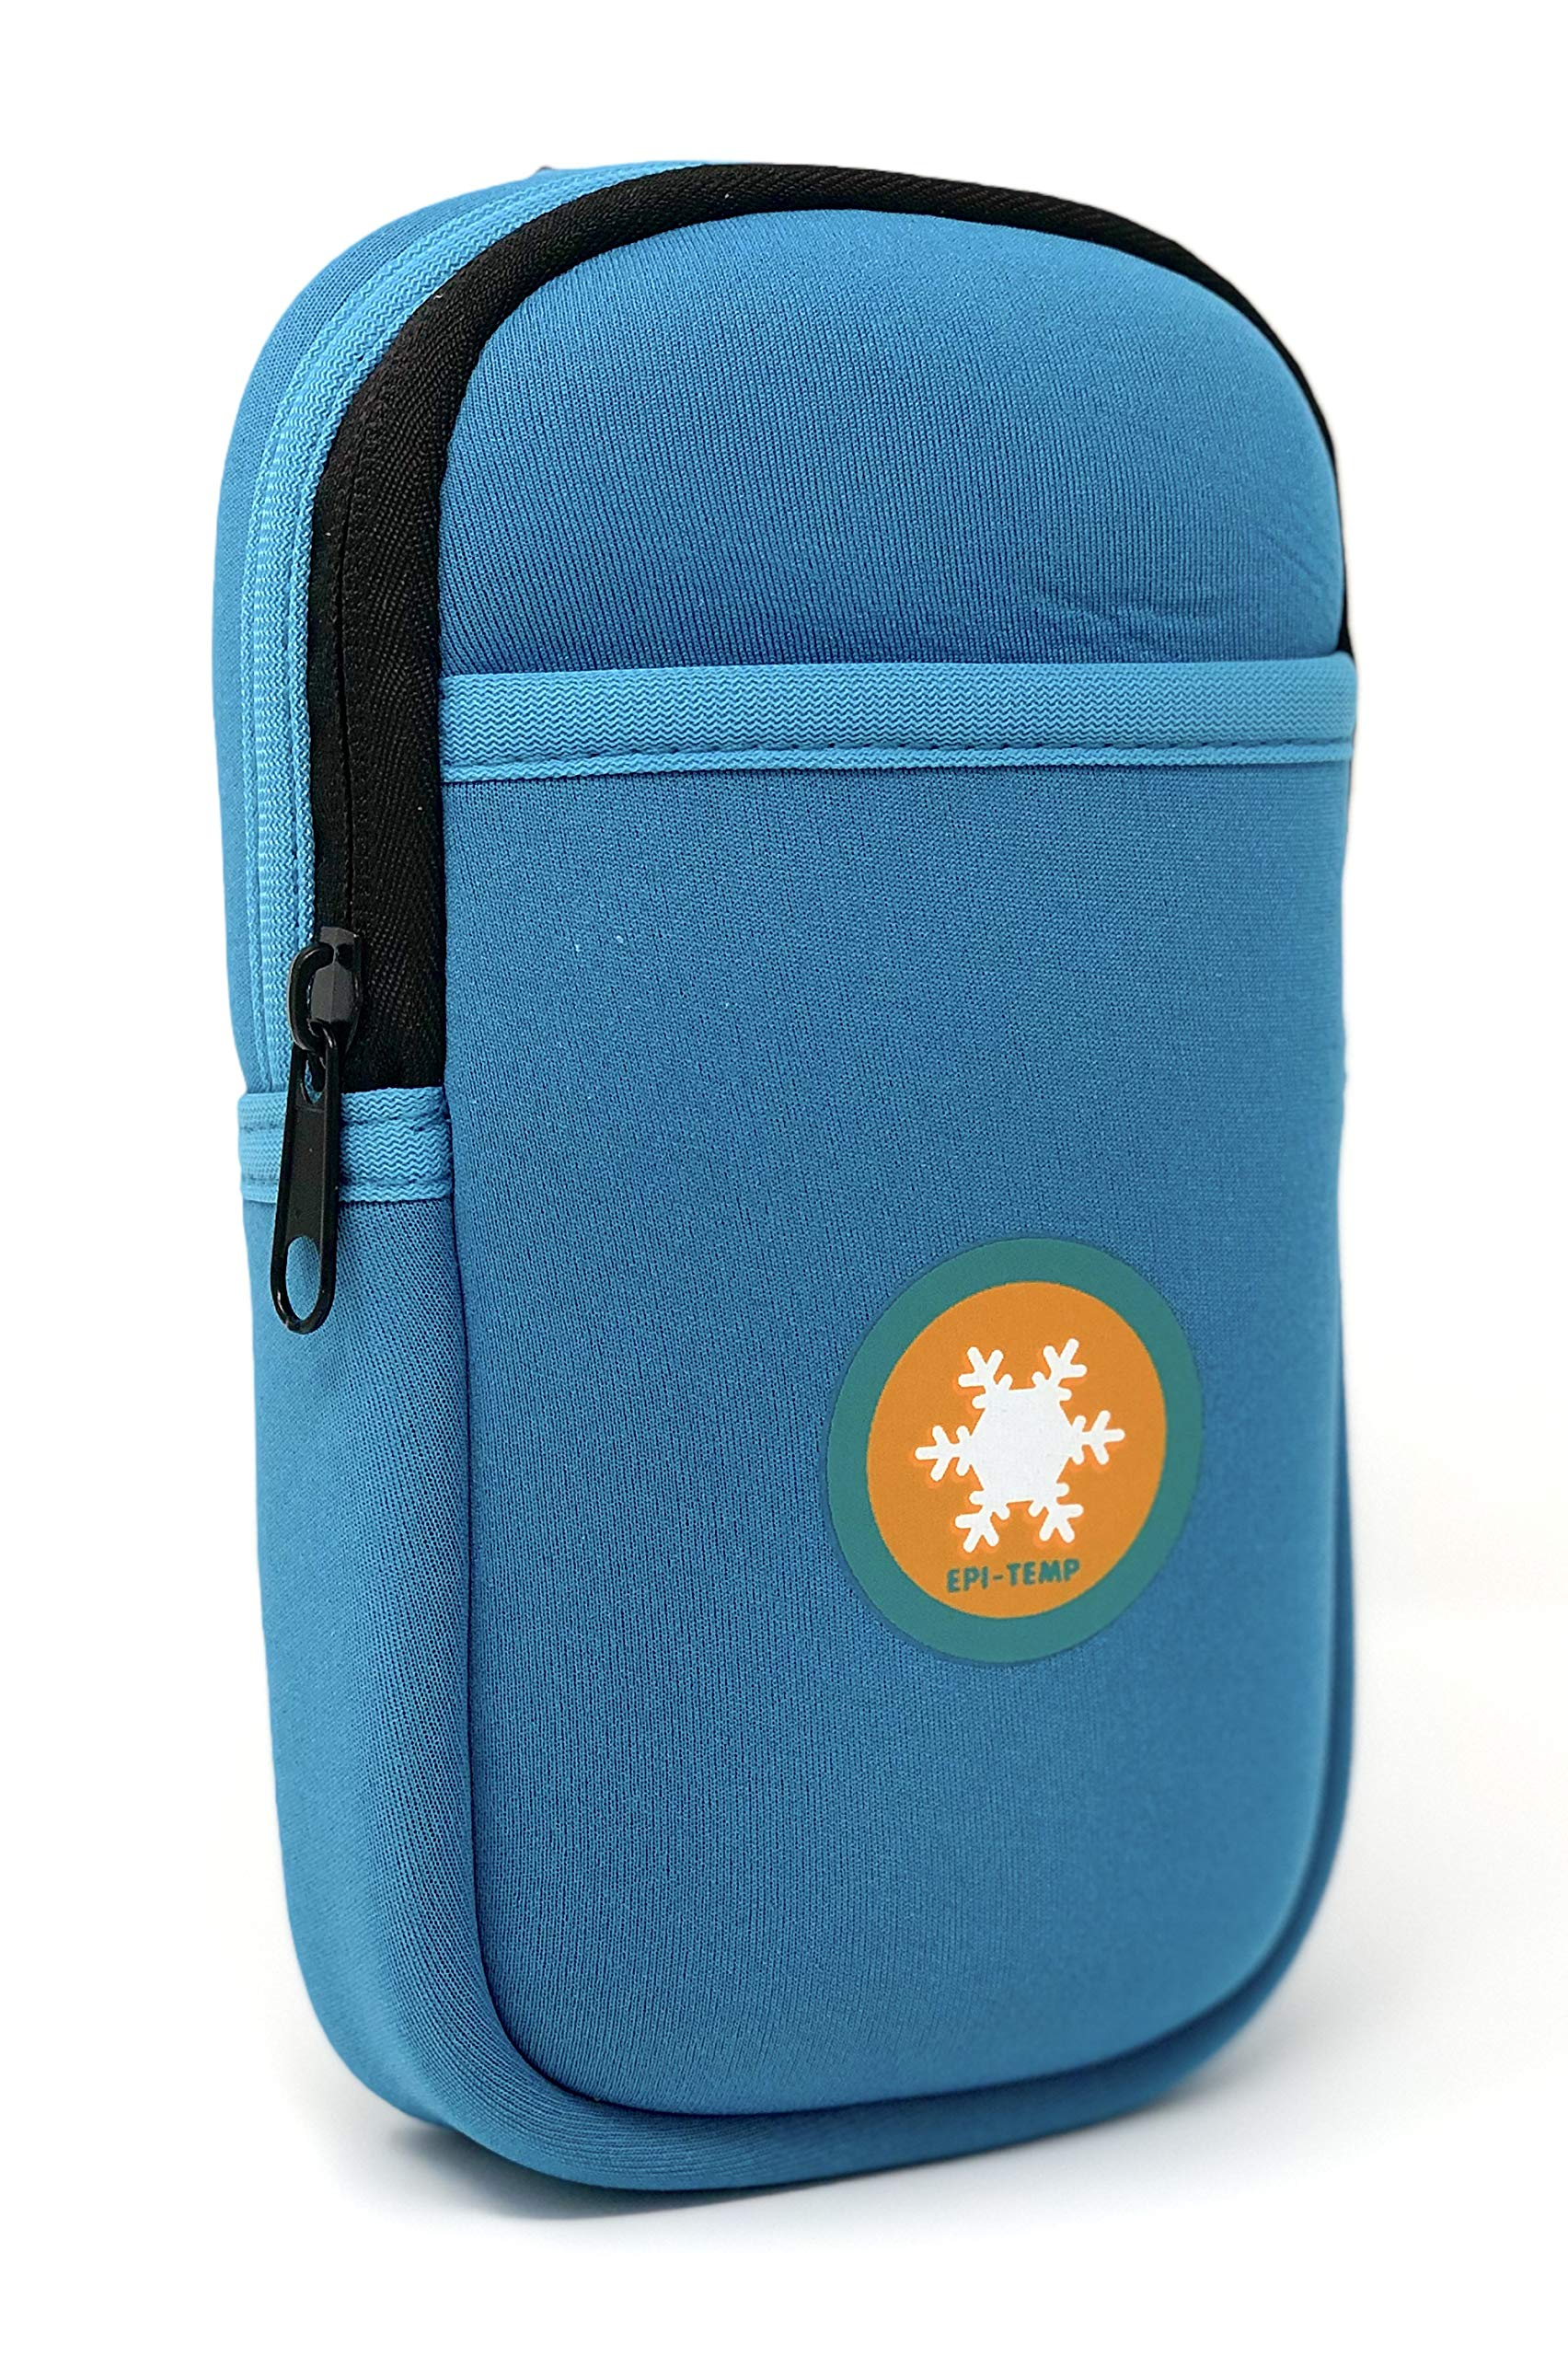 EPI-TEMP Epipen Insulated Case for Kids, Adults - Smart Carrying Pouch, Storage Bag, Powered by PureTemp Phase Change Material to Keep Epinephrine in Safe Temperature Range (Teal) by EPI-TEMP (Image #3)